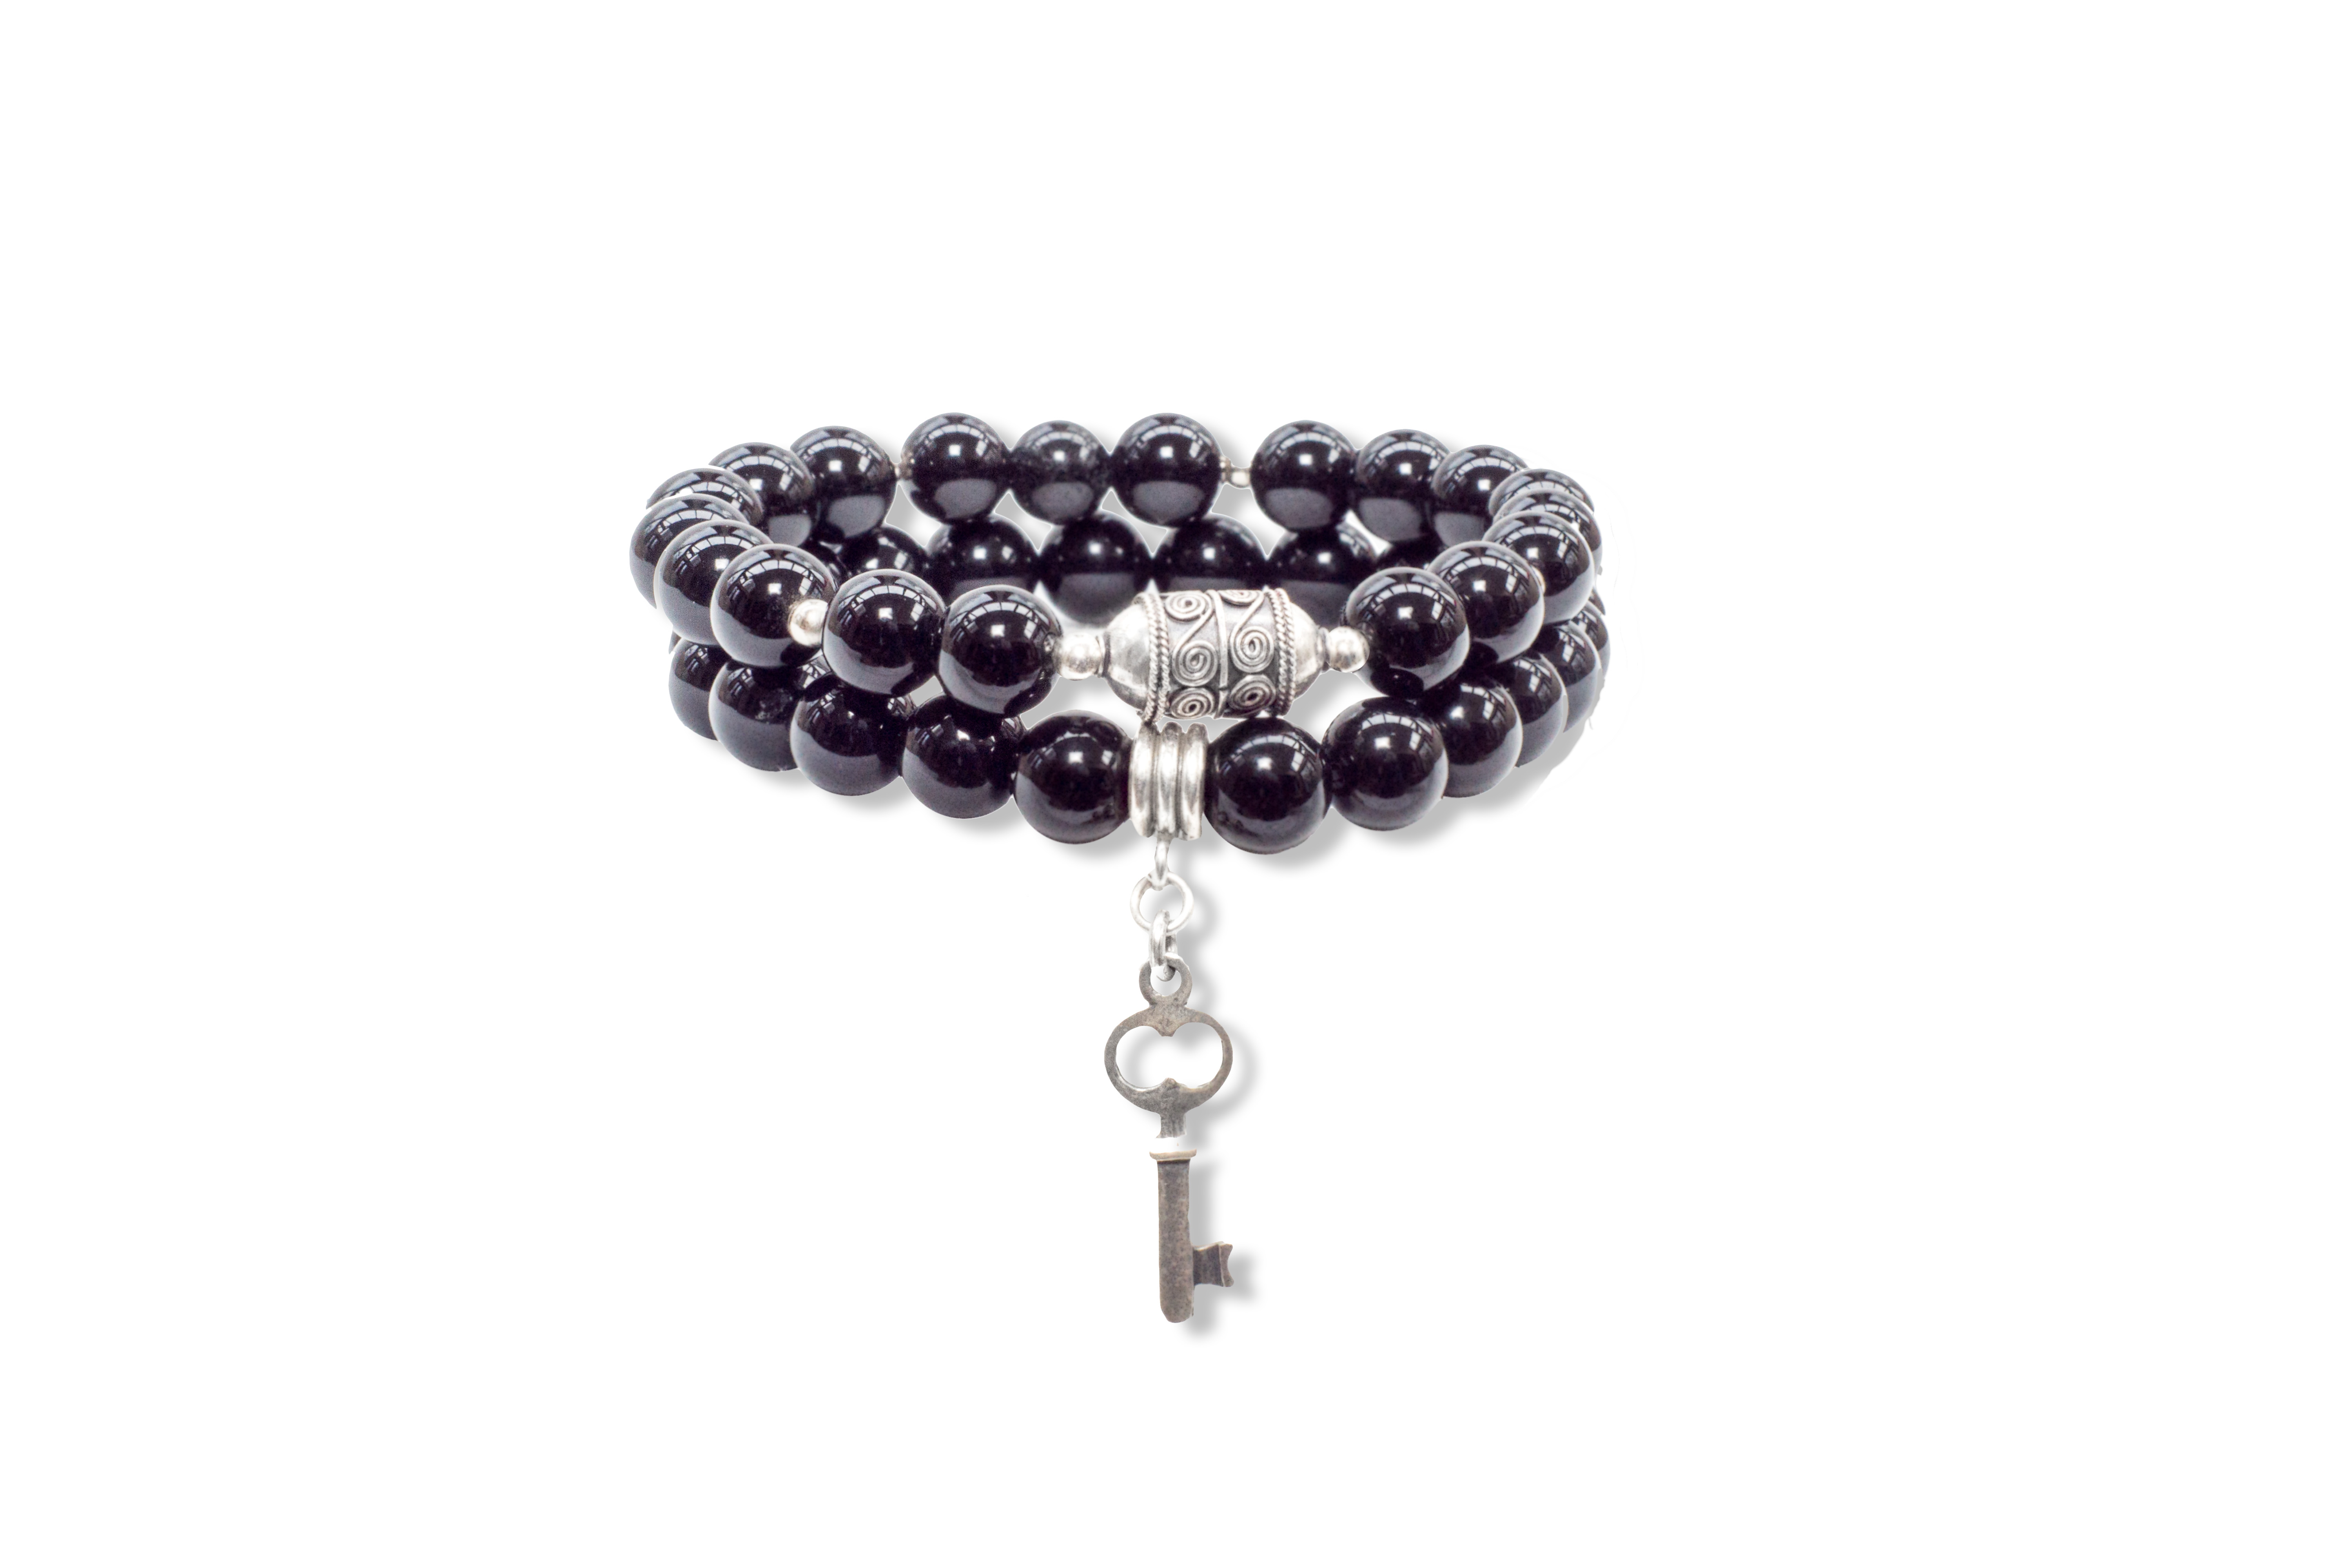 Onyx Be Present Bracelet with Sterling Silver Key - Made As